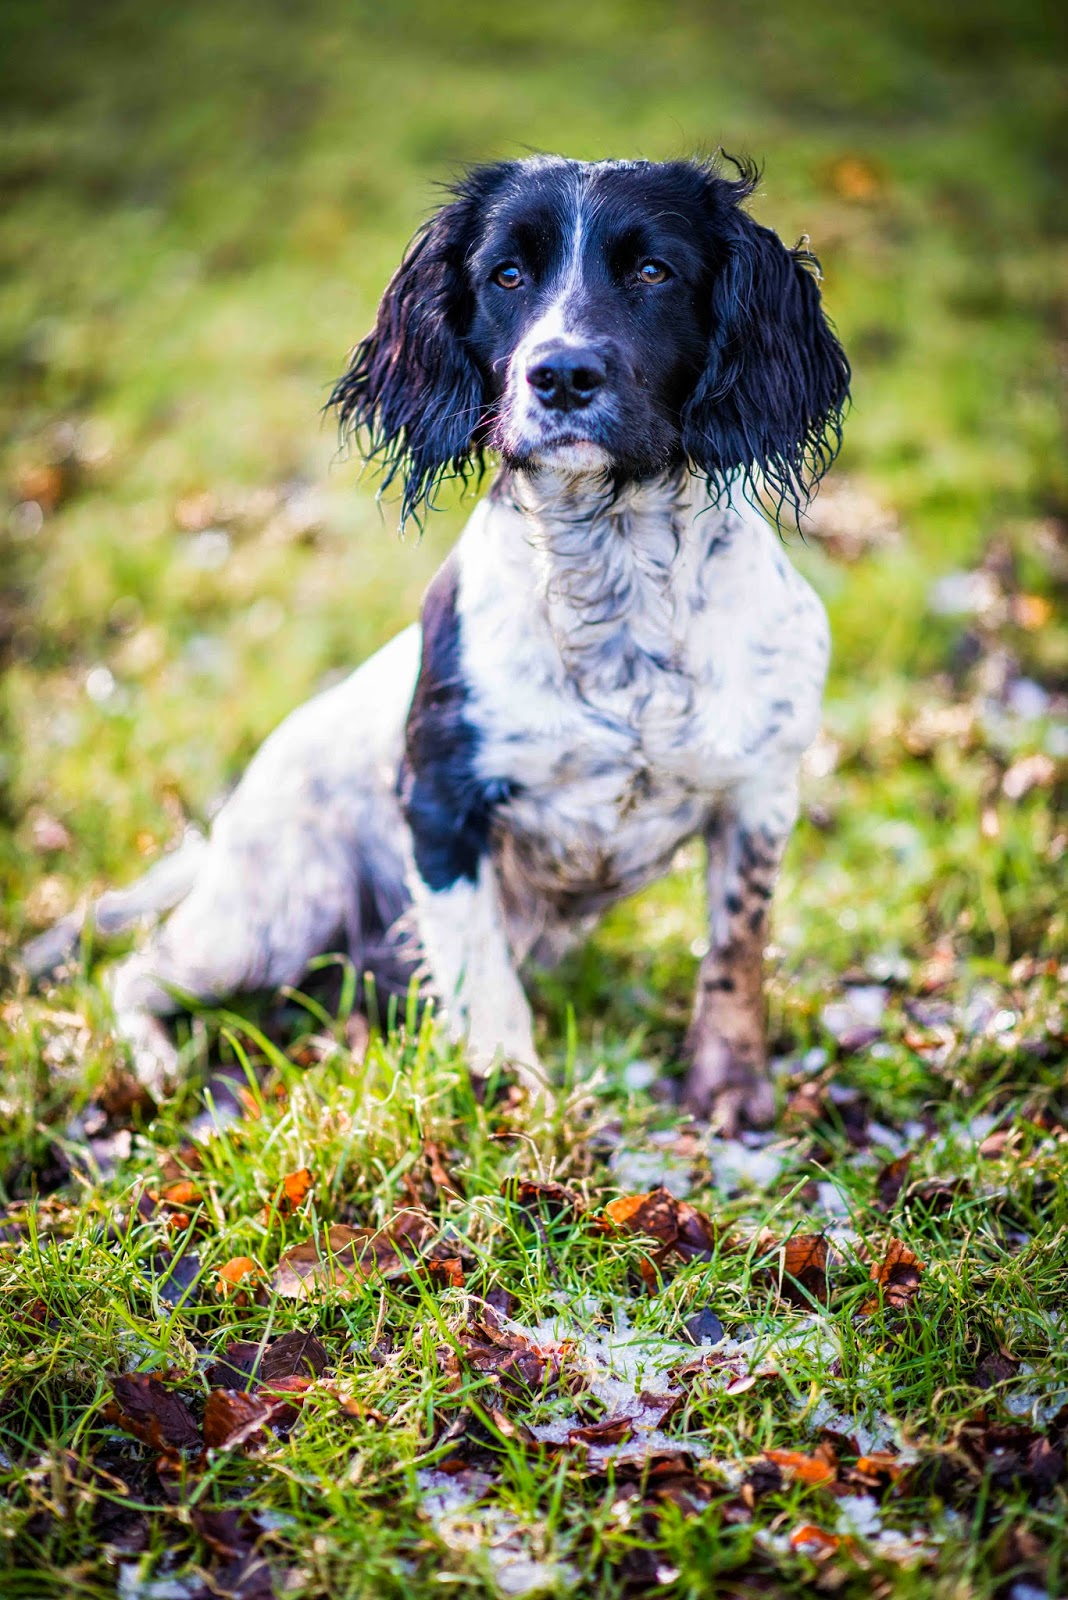 springer spaniel dog puppy liquidgrain liquid grain